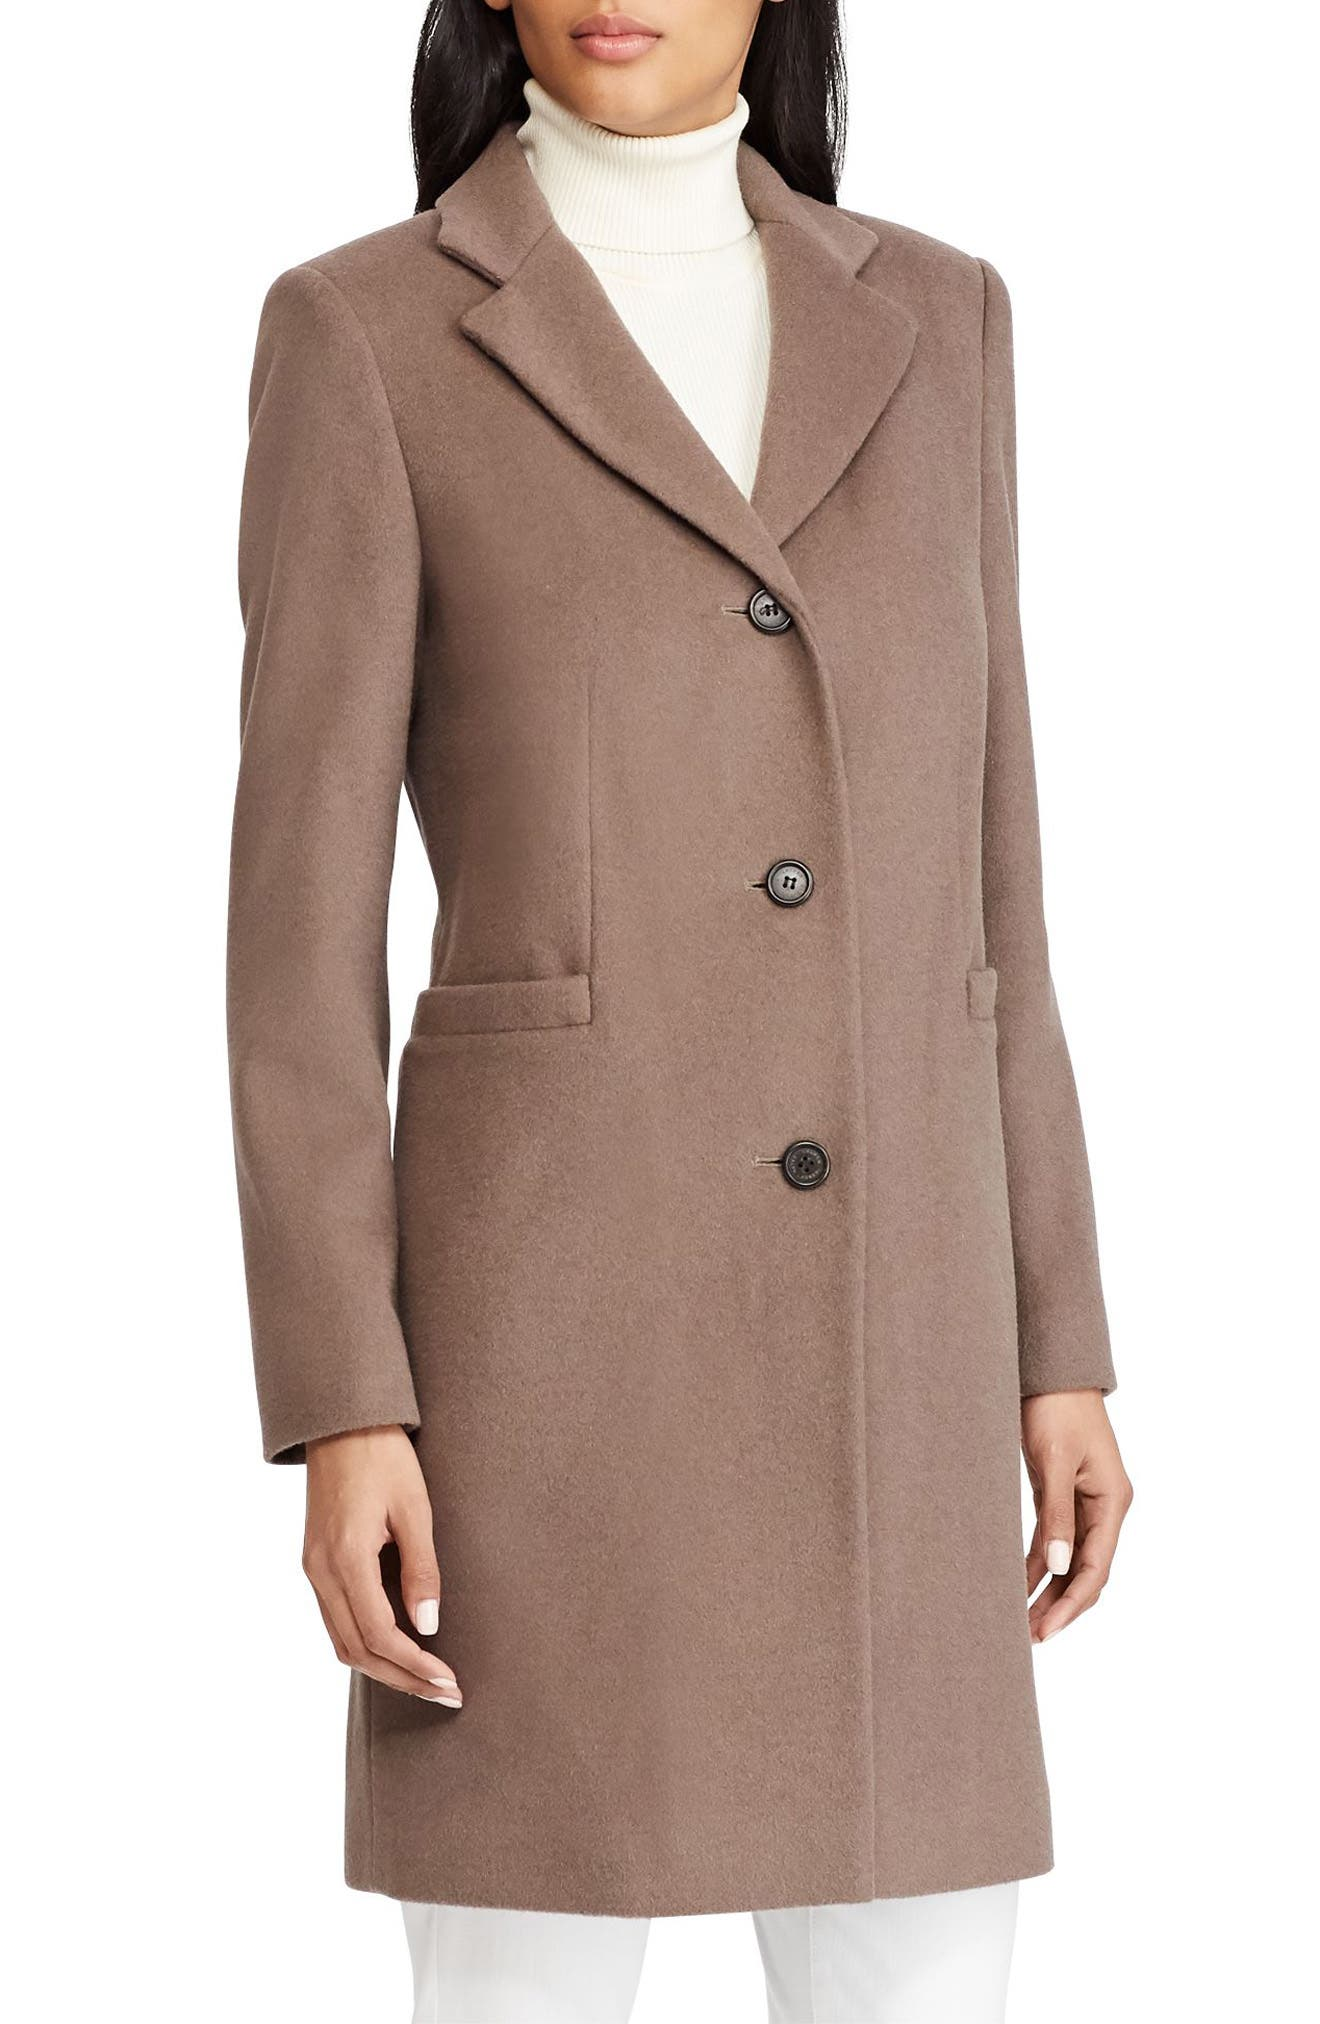 Lauren Ralph Lauren Paige Wool Blend Reefer Coat (Regular \u0026 Petite)